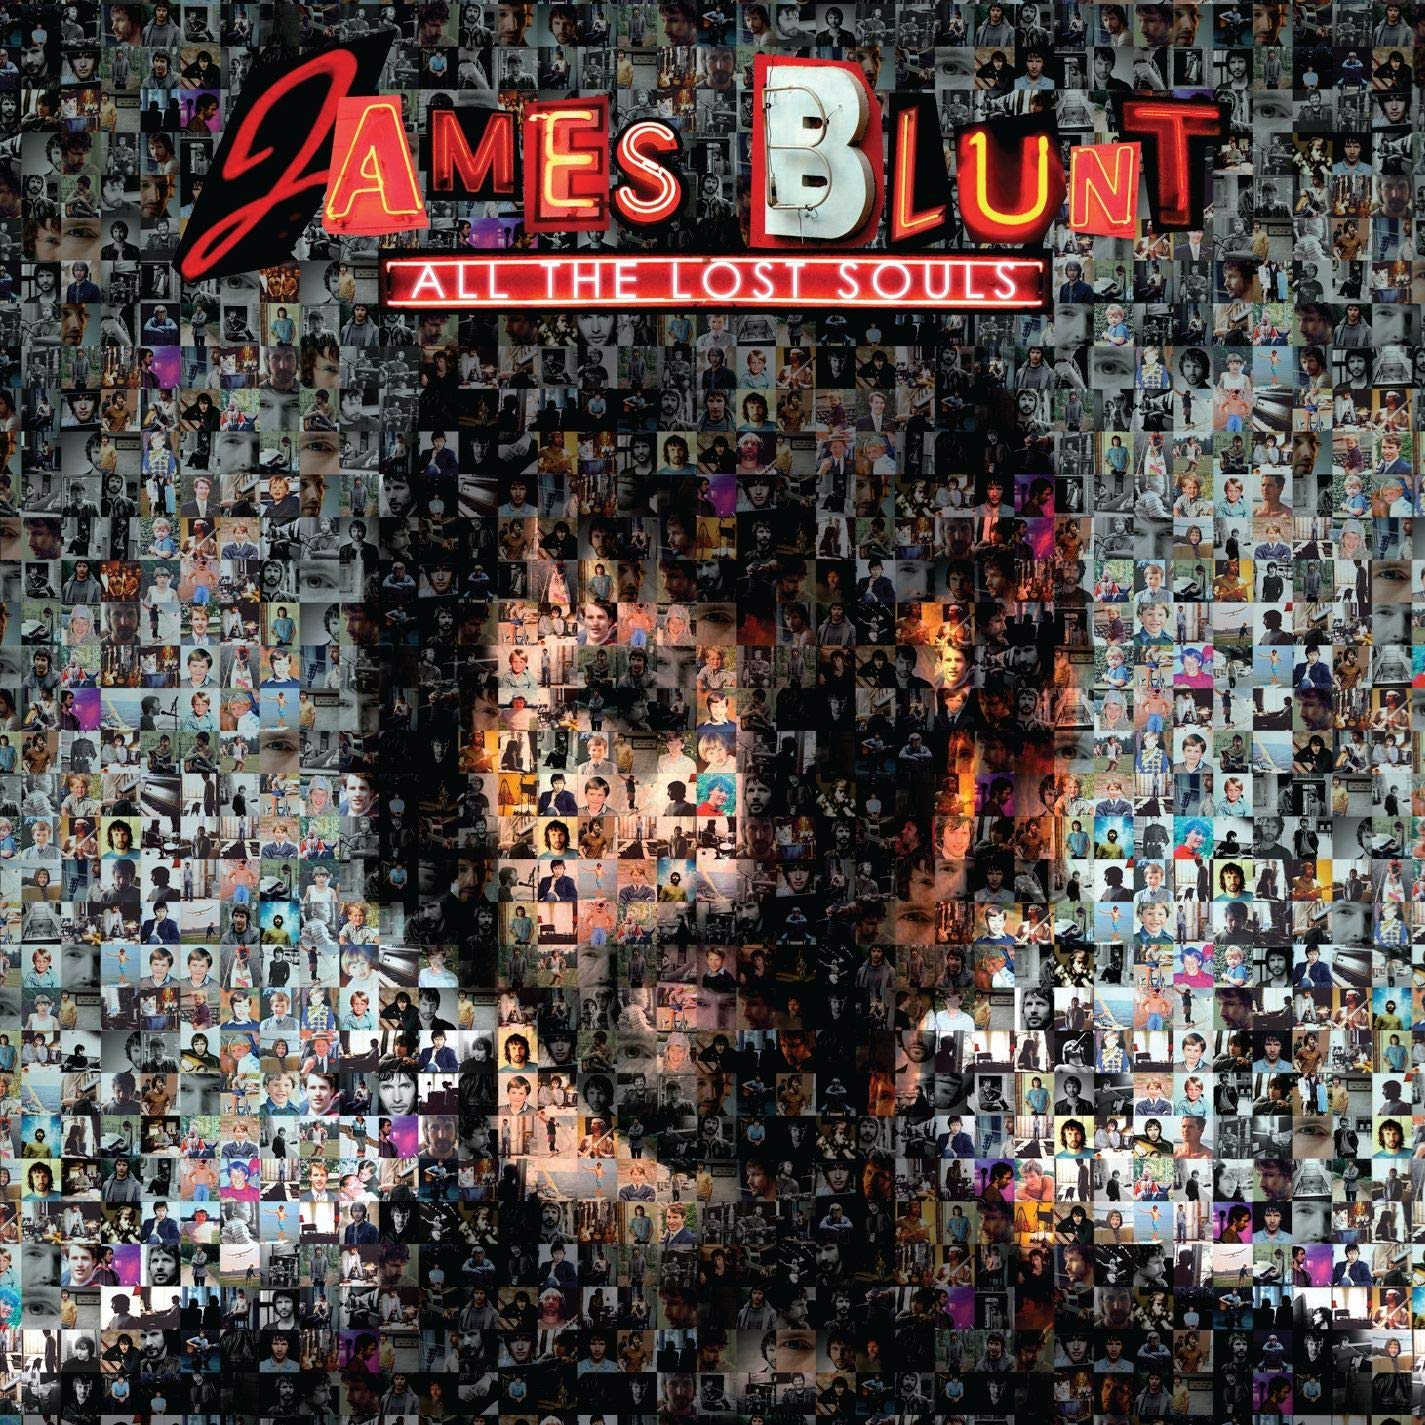 James Blunt - CD ALL THE LOST SOULS